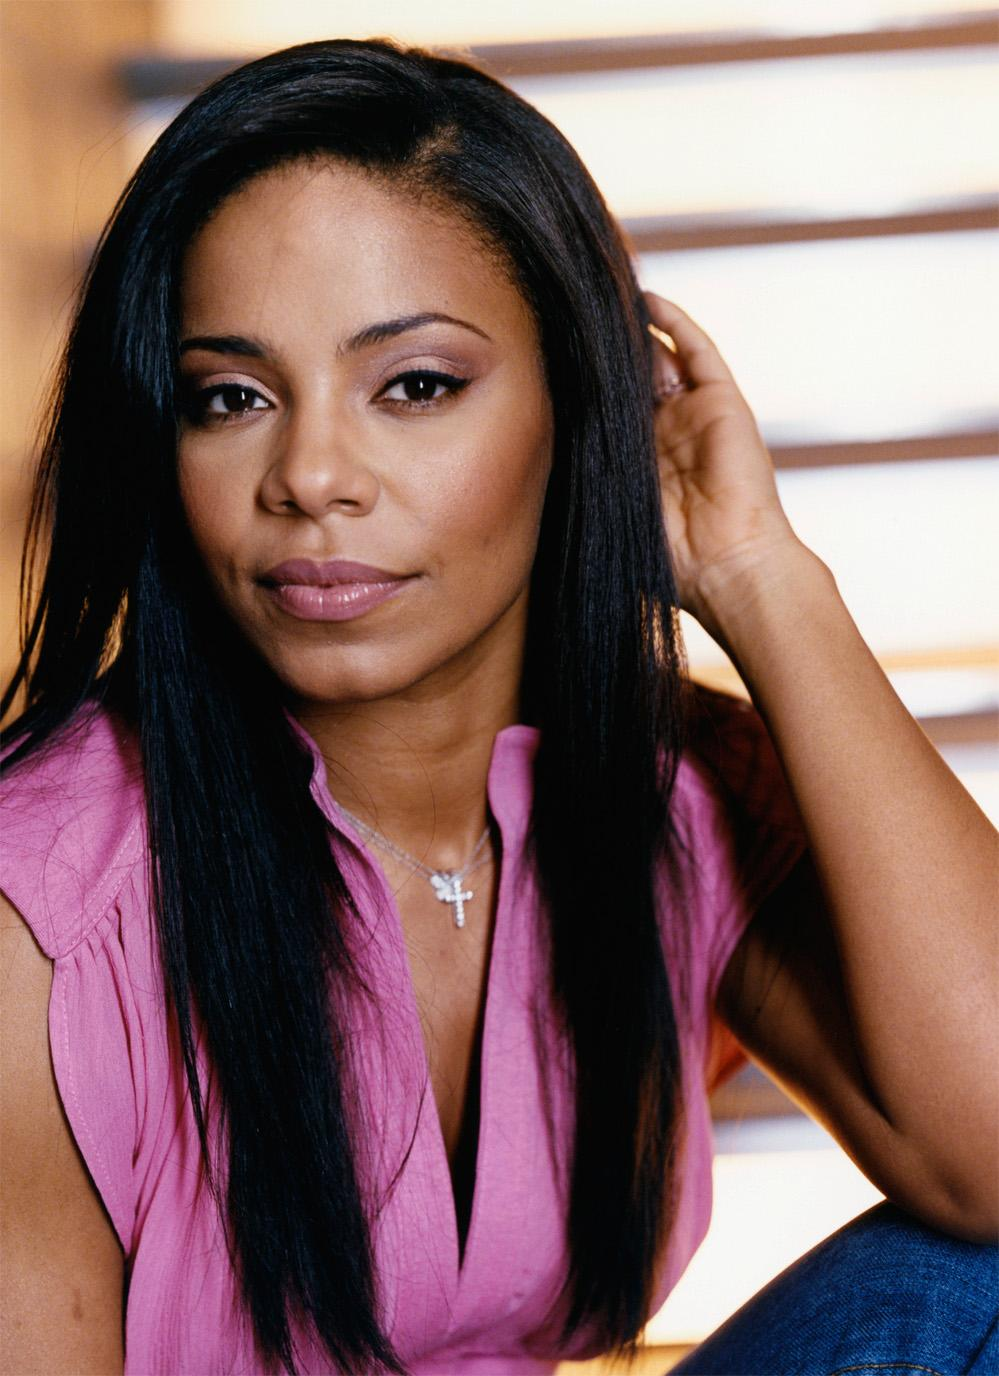 hair extension hairstyles and information: sanaa lathan